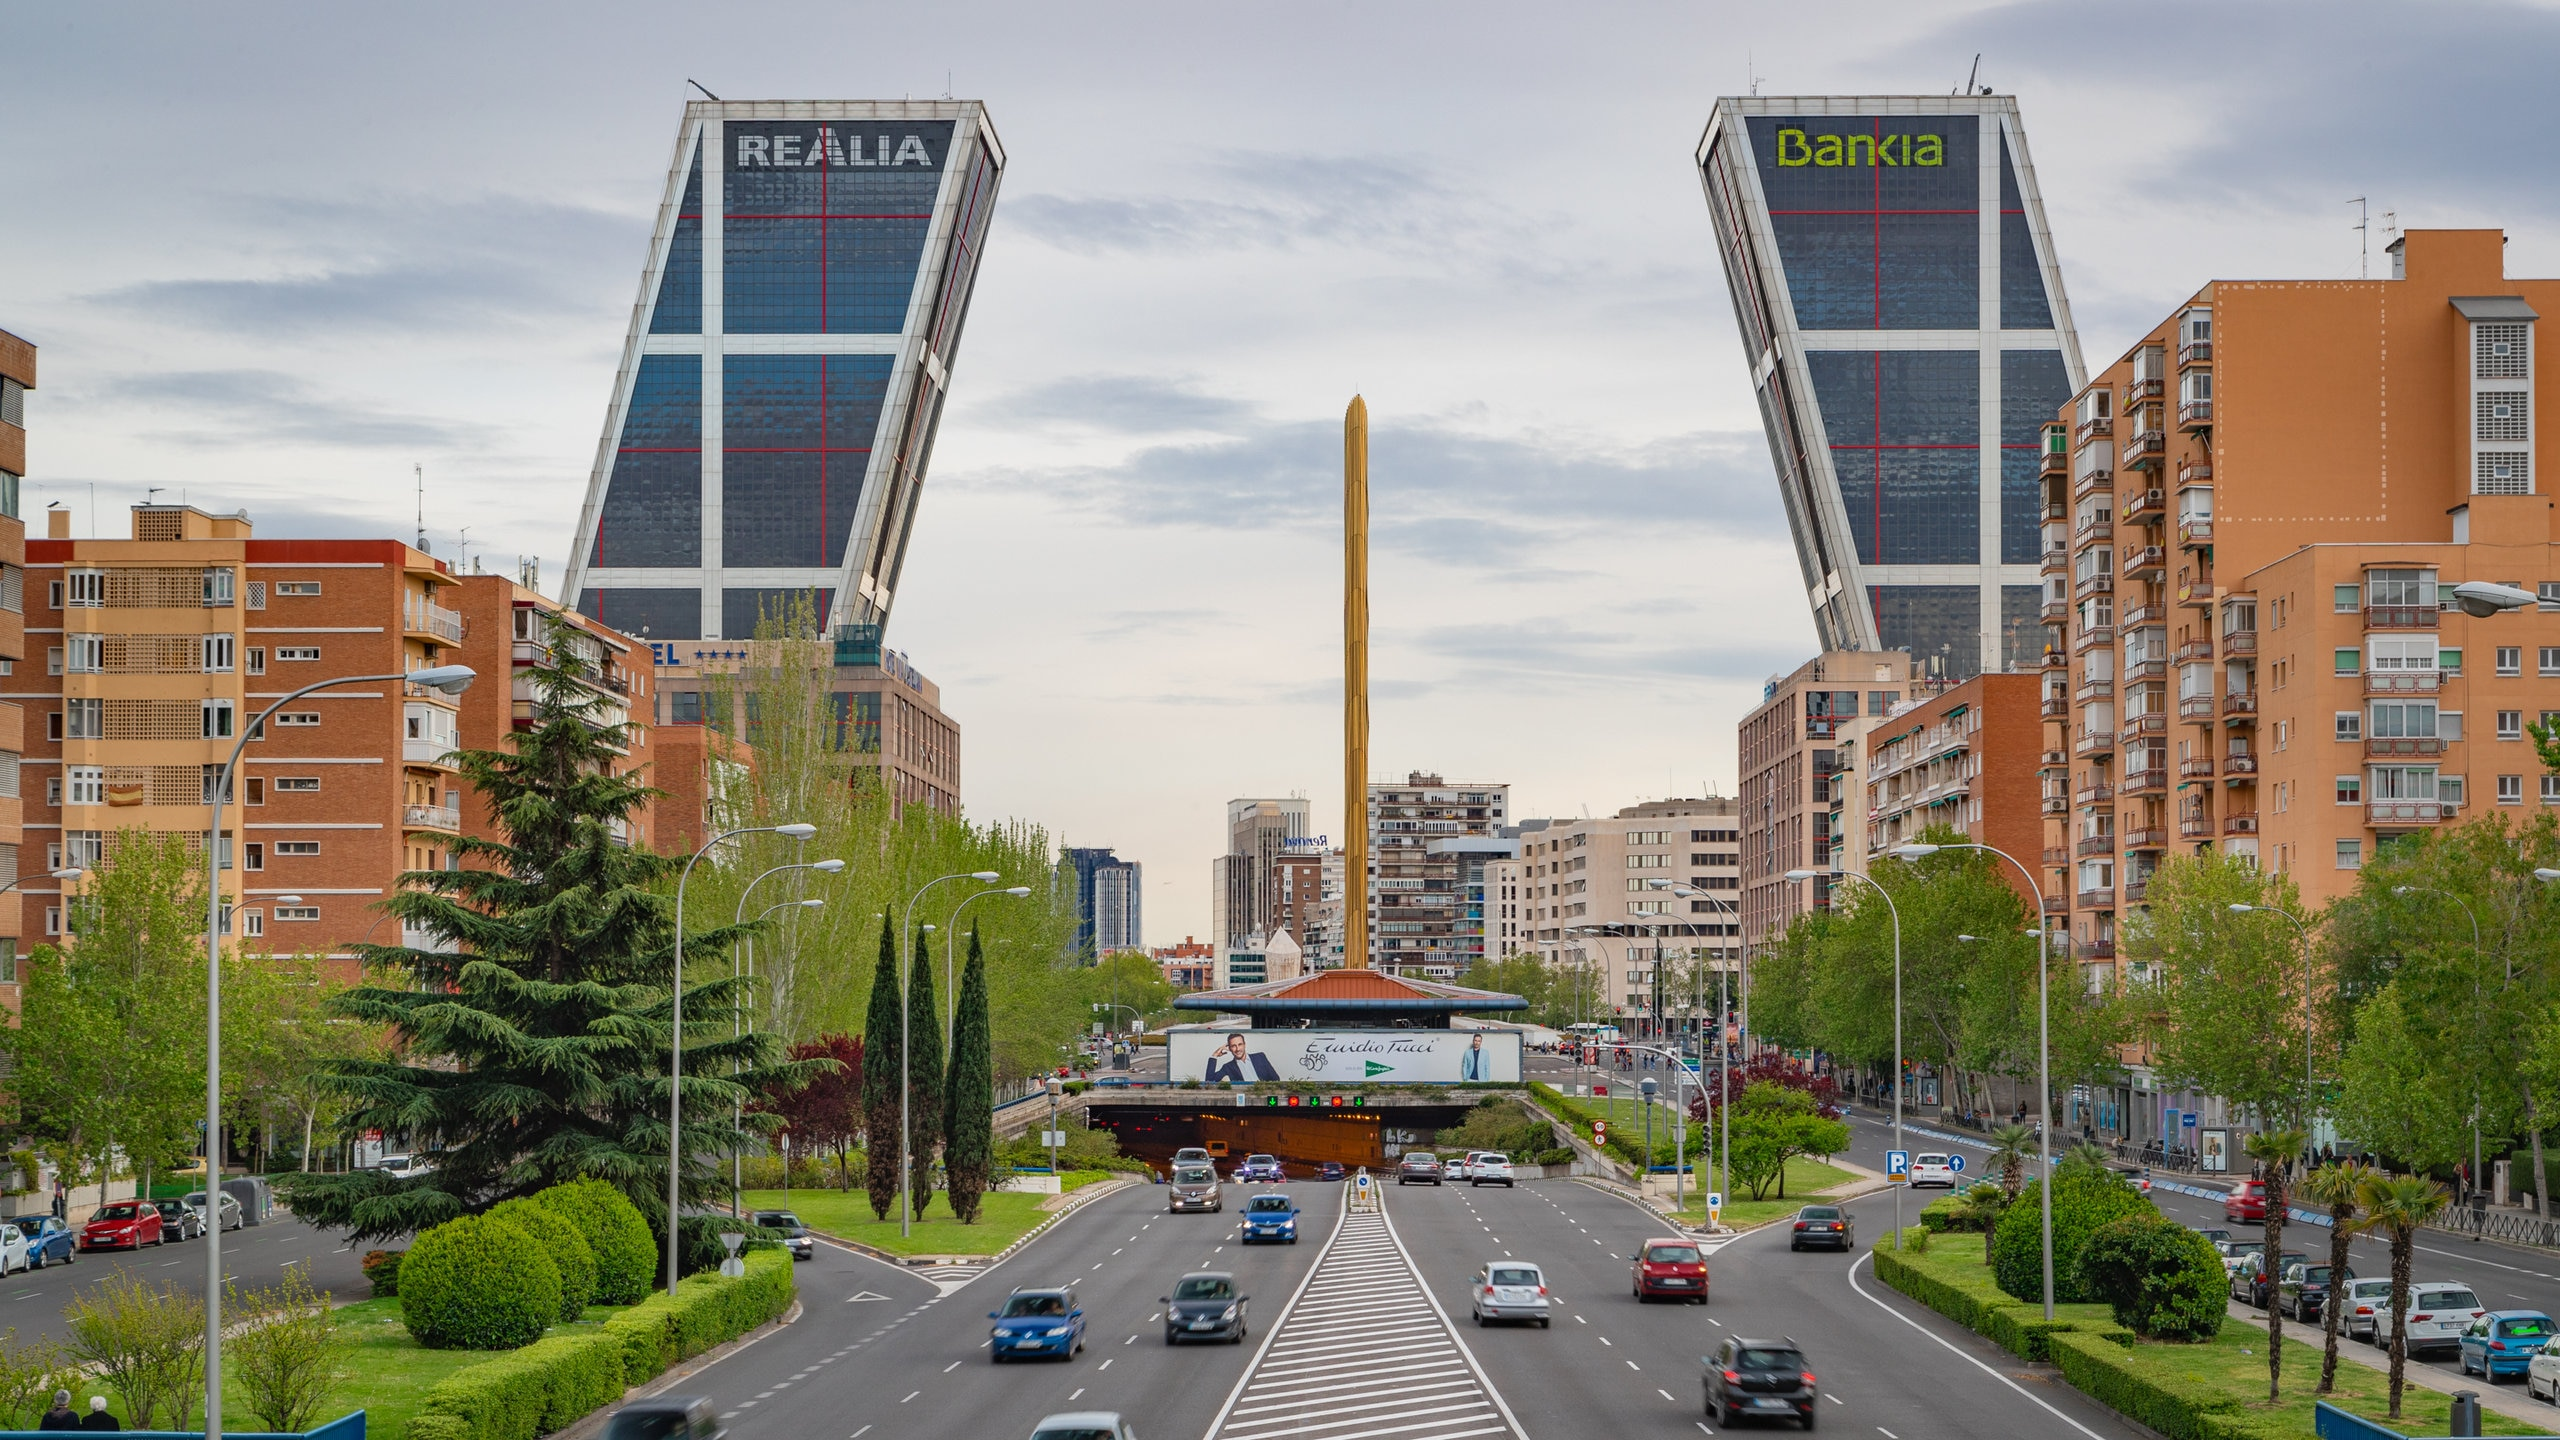 Top 10 Hotels Closest To Plaza De Castilla In Madrid From